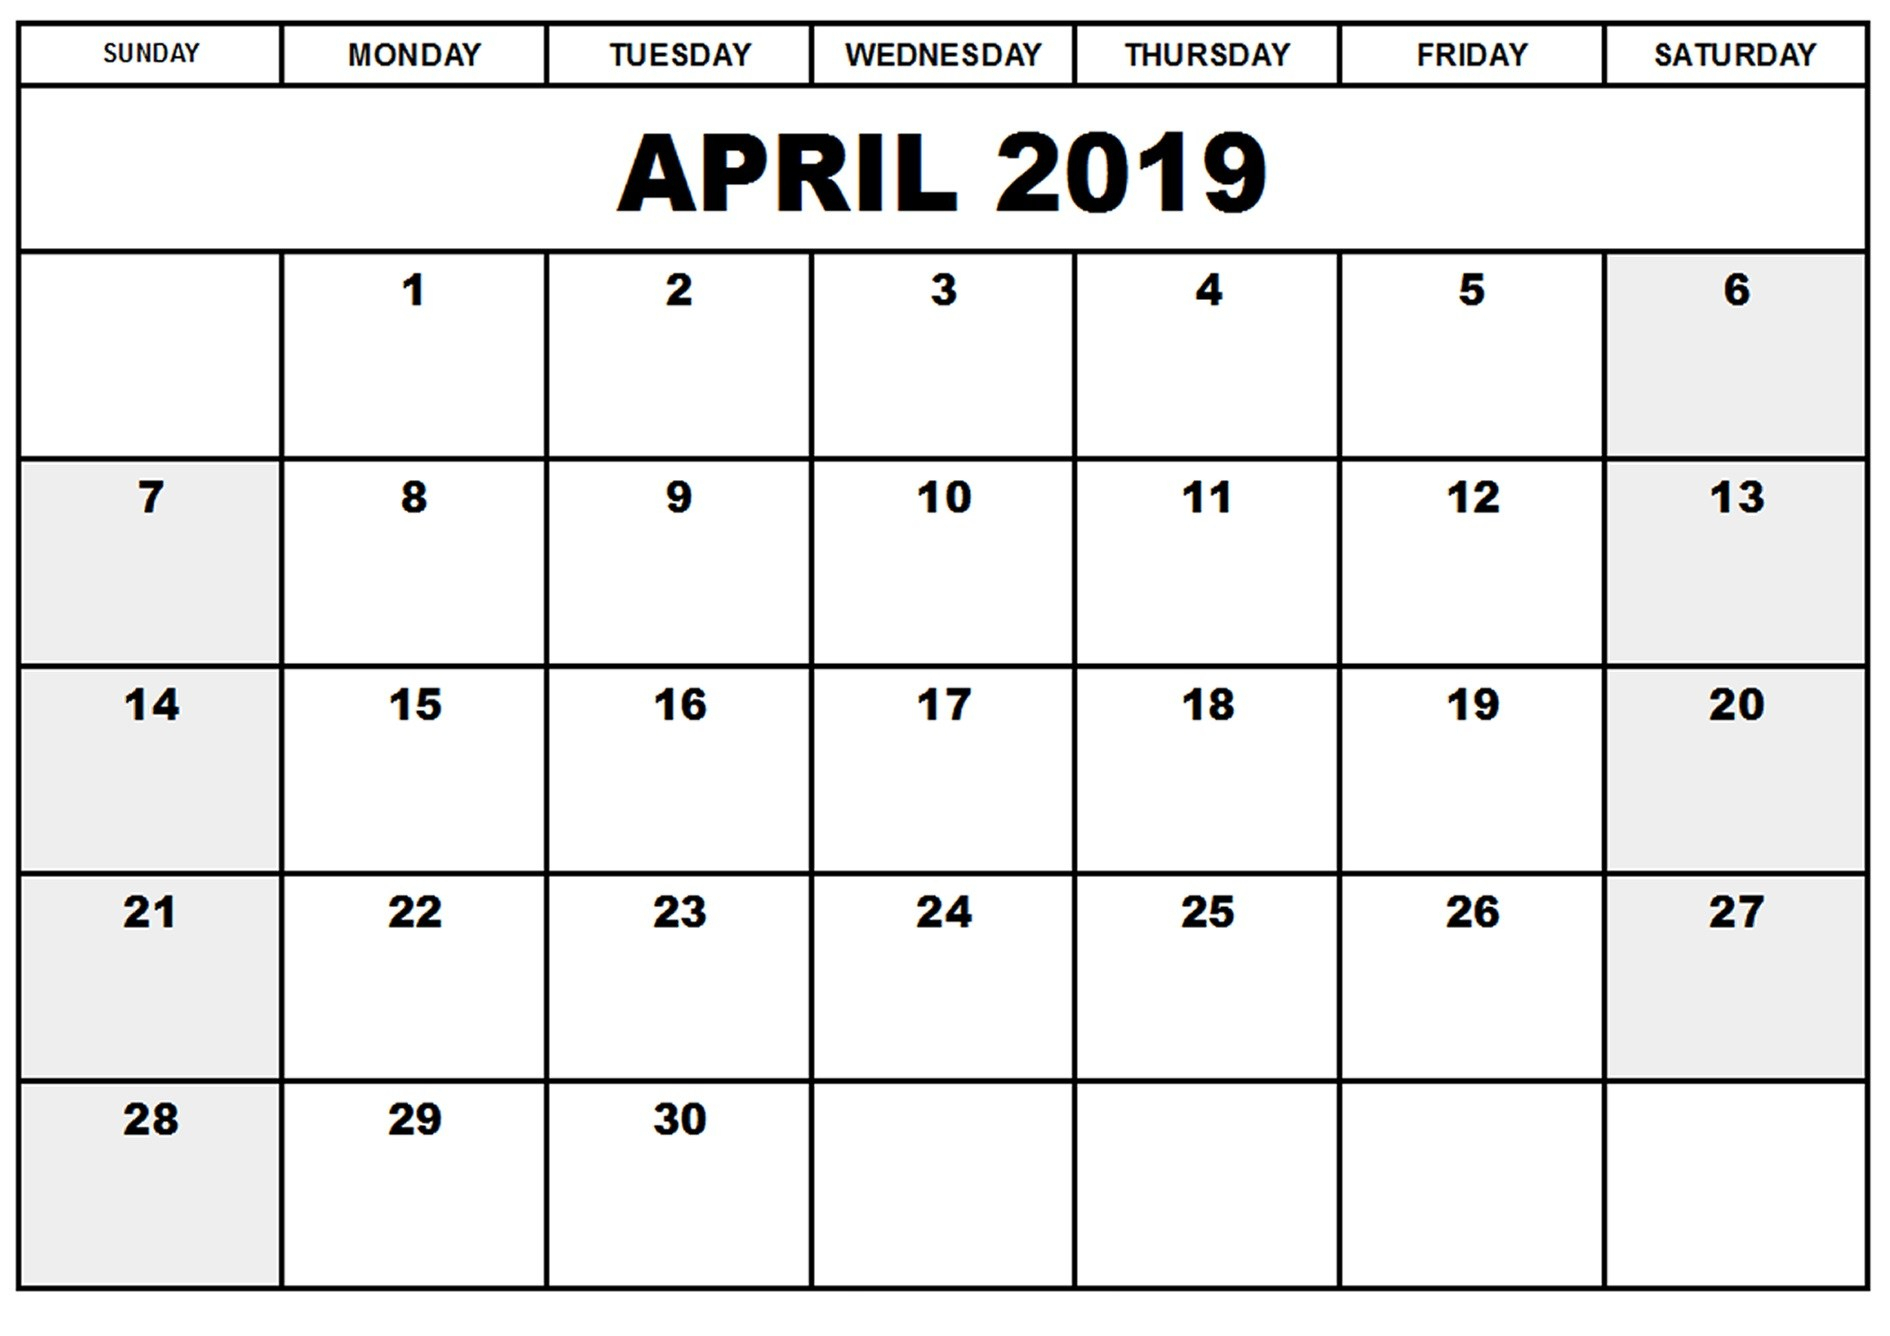 Free April 2019 Calendar Printable Blank Templates - Pdf Word regarding April Calendar Template